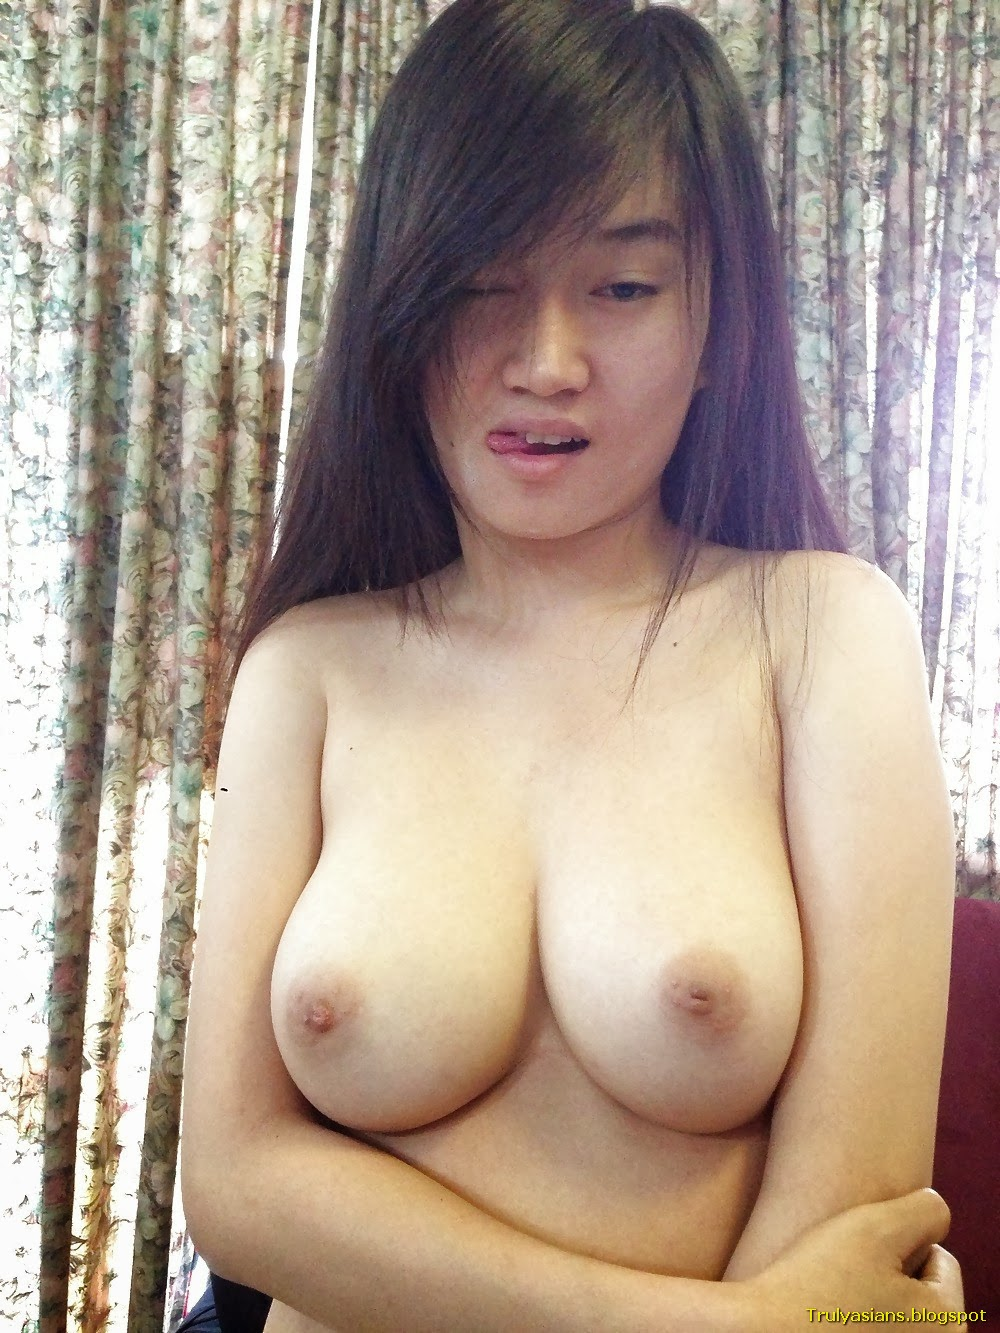 Seldom.. Singaporean secondary school nude think, you